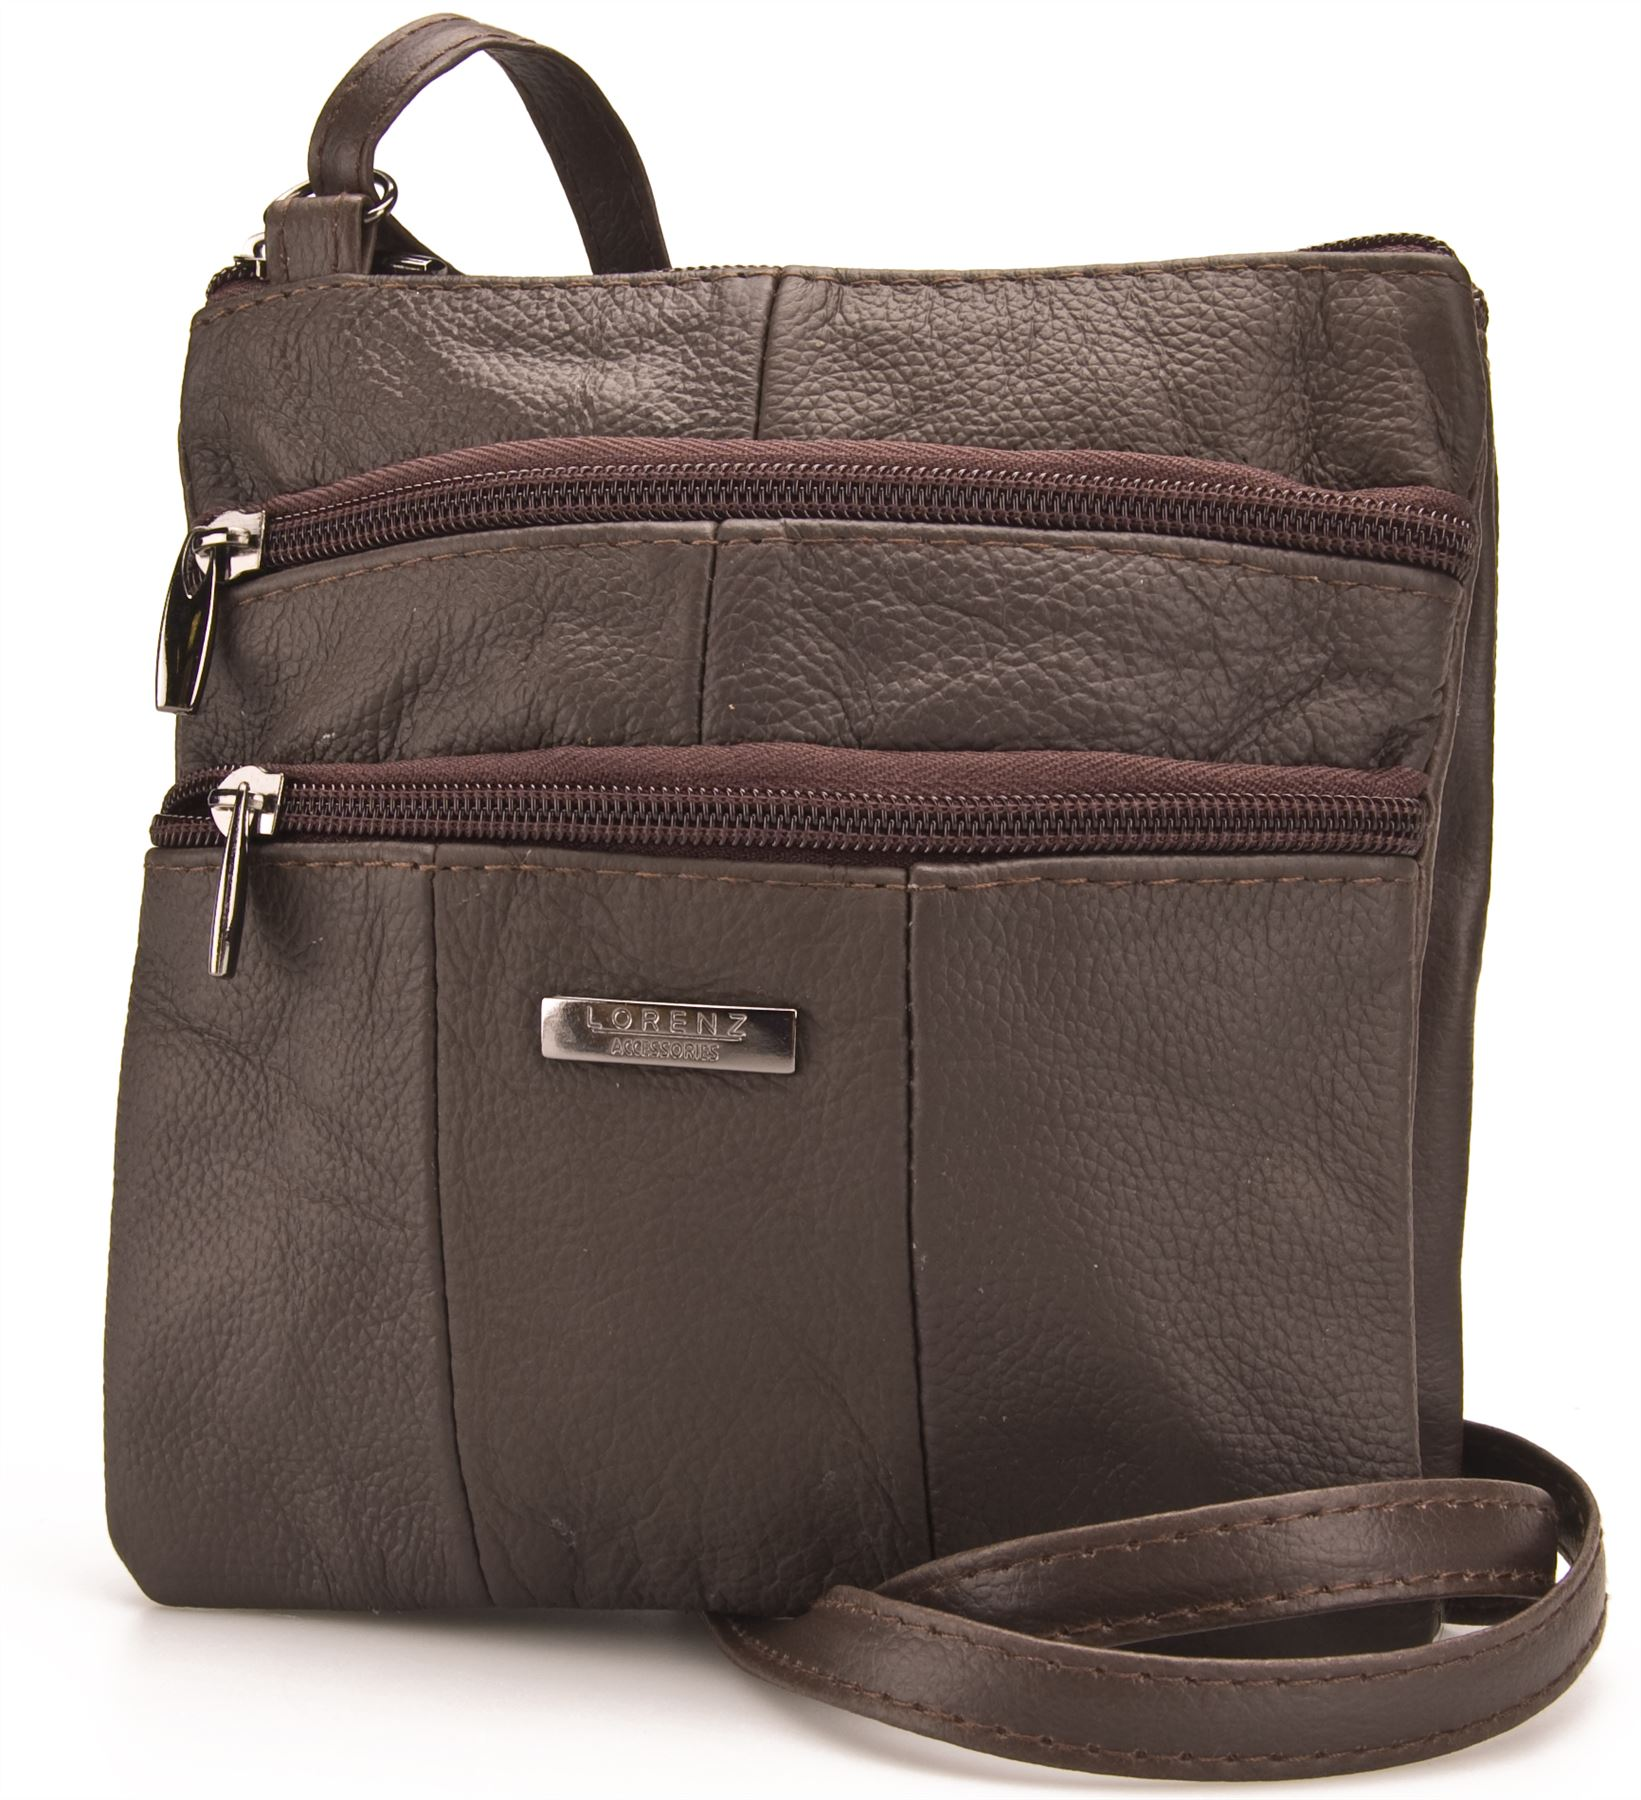 Lorenz-Genuine-Soft-Leather-Ladies-Cross-Body-Shoulder-Bag-Real-Small-Womens